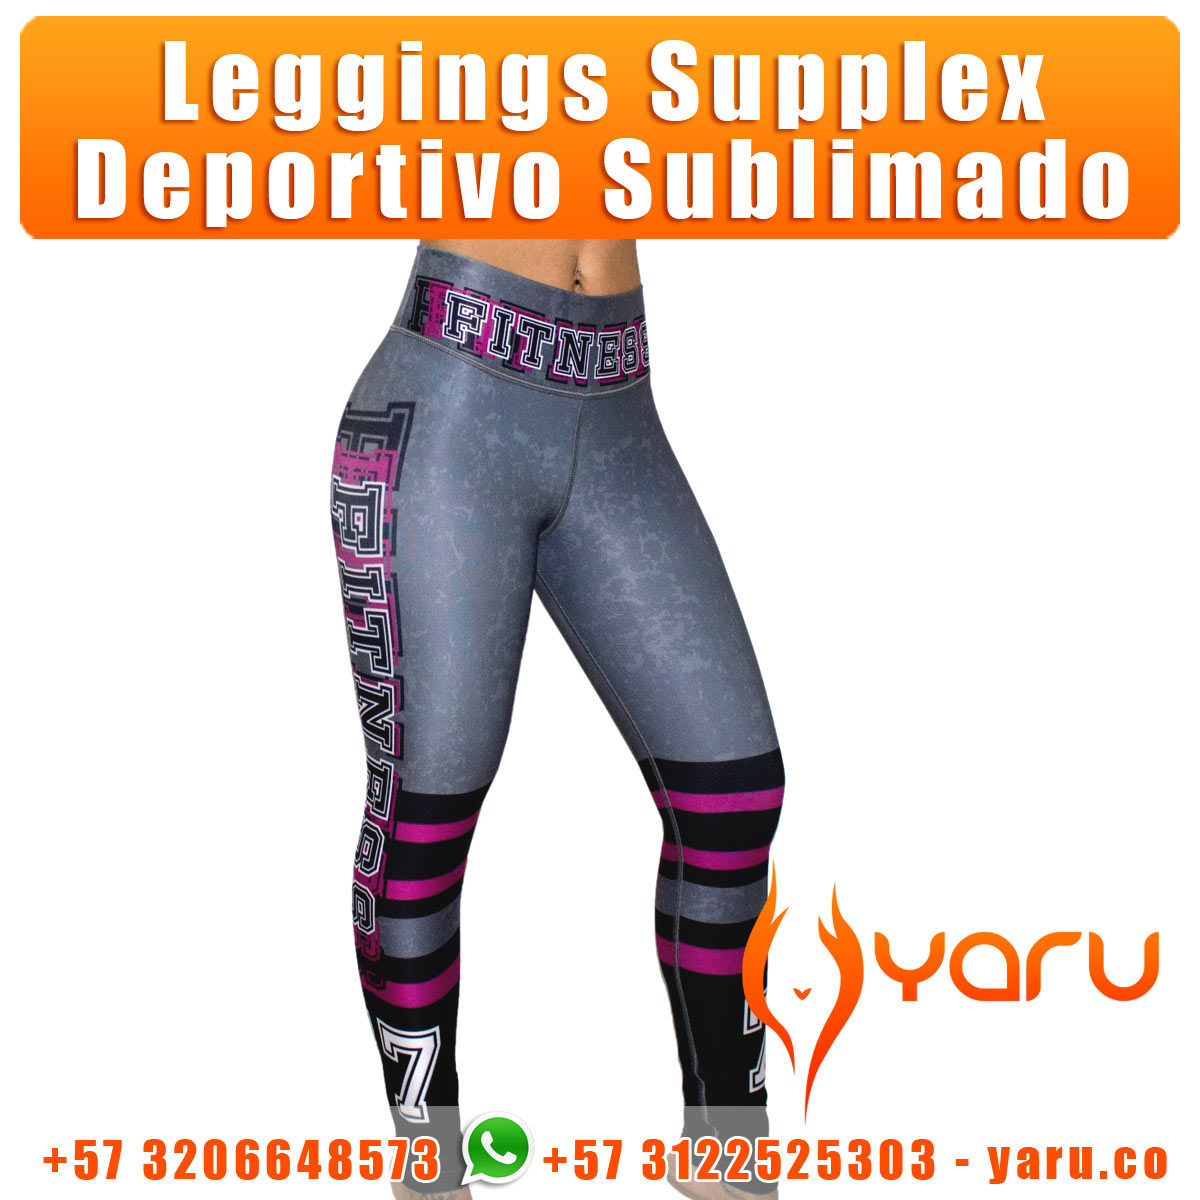 leggings supplex fabrica ropa deportiva cali